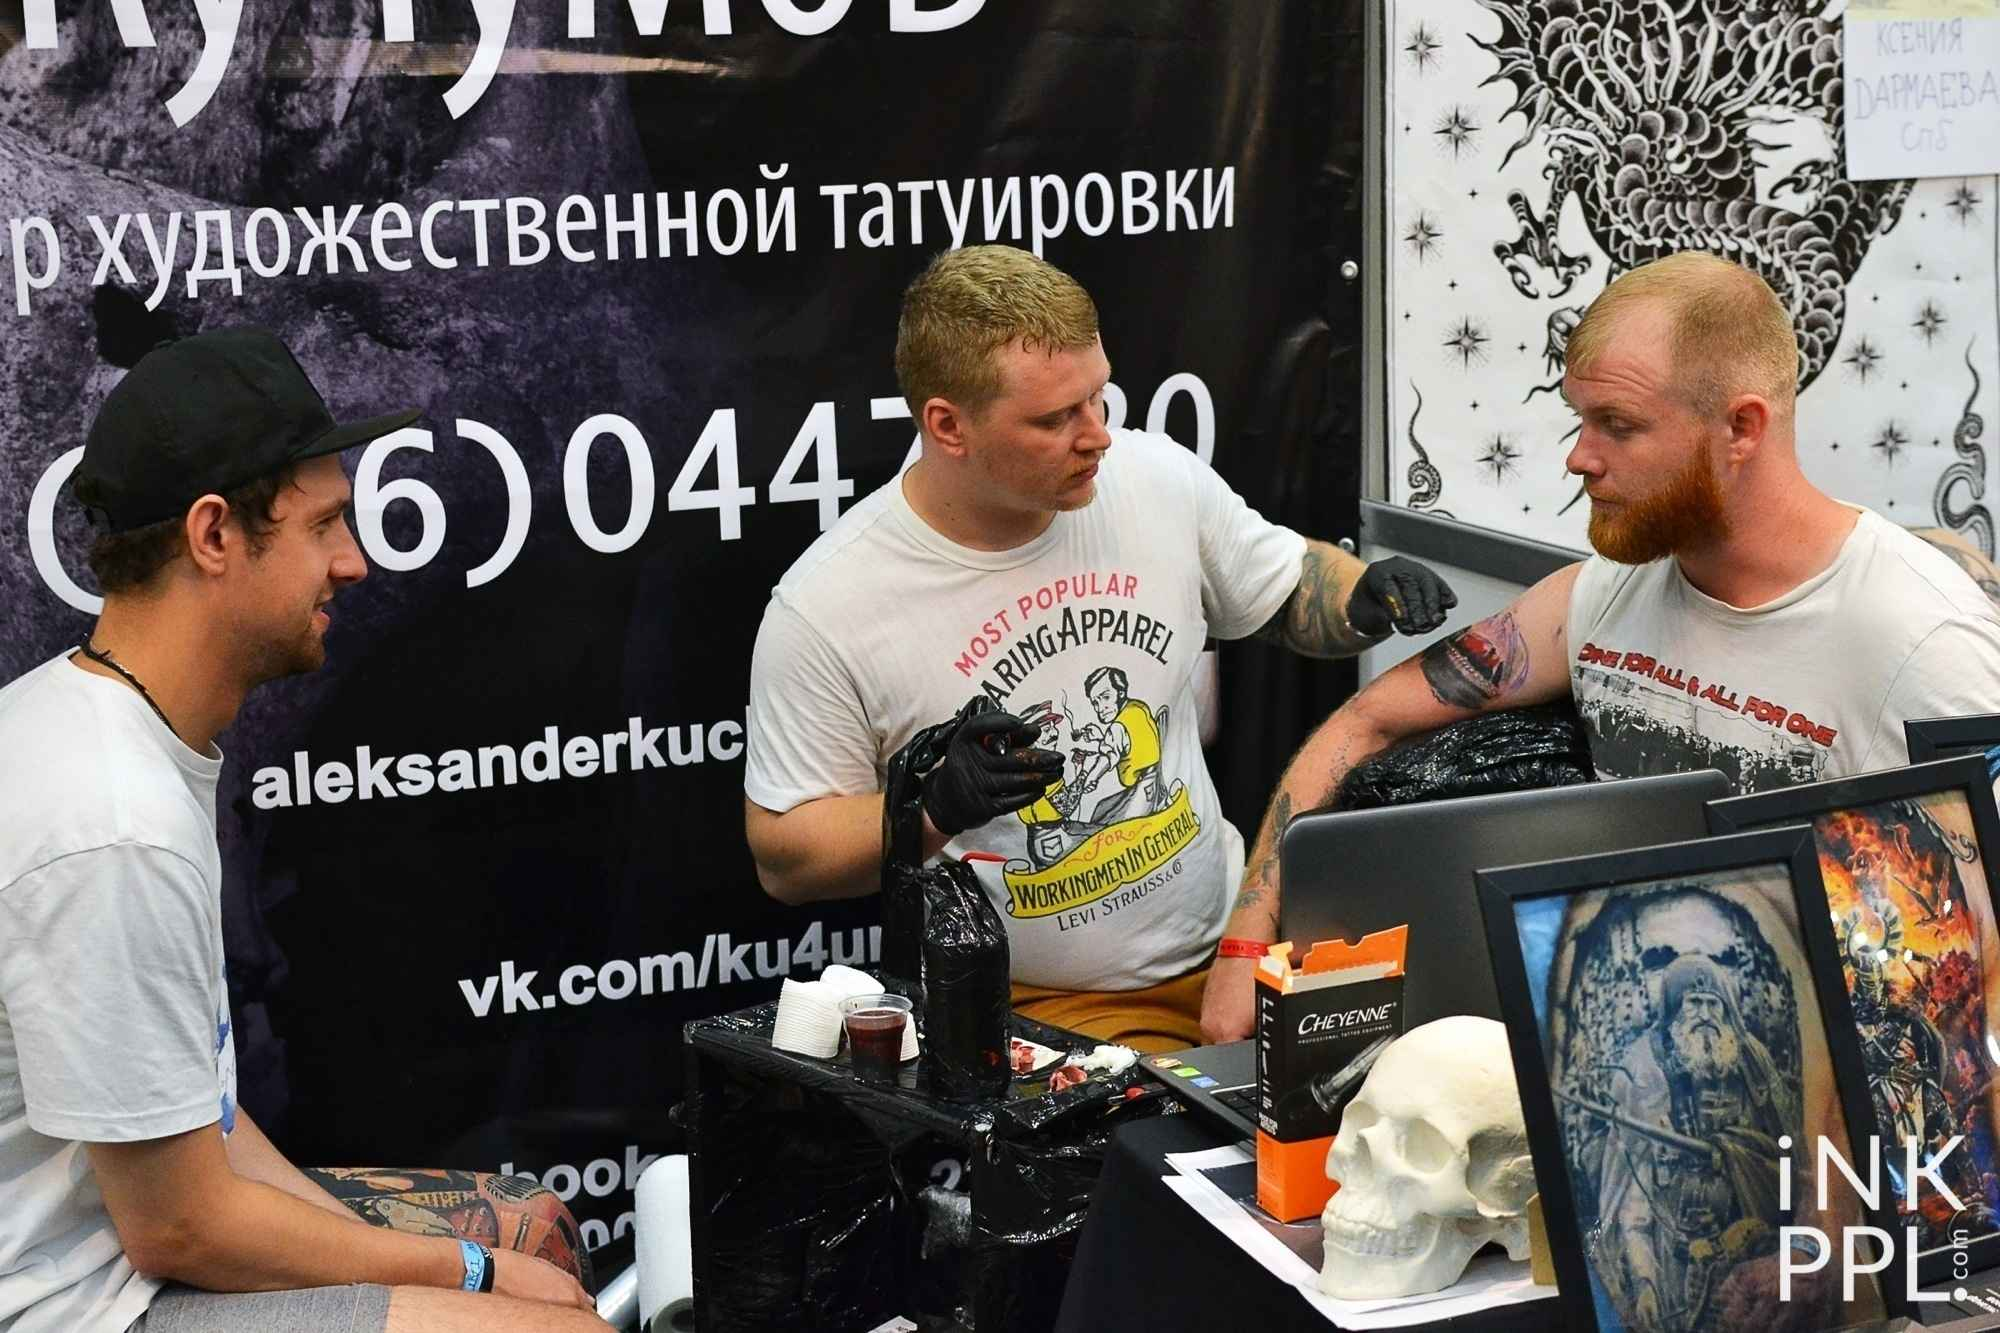 Moscow International Tattoo Week 2016